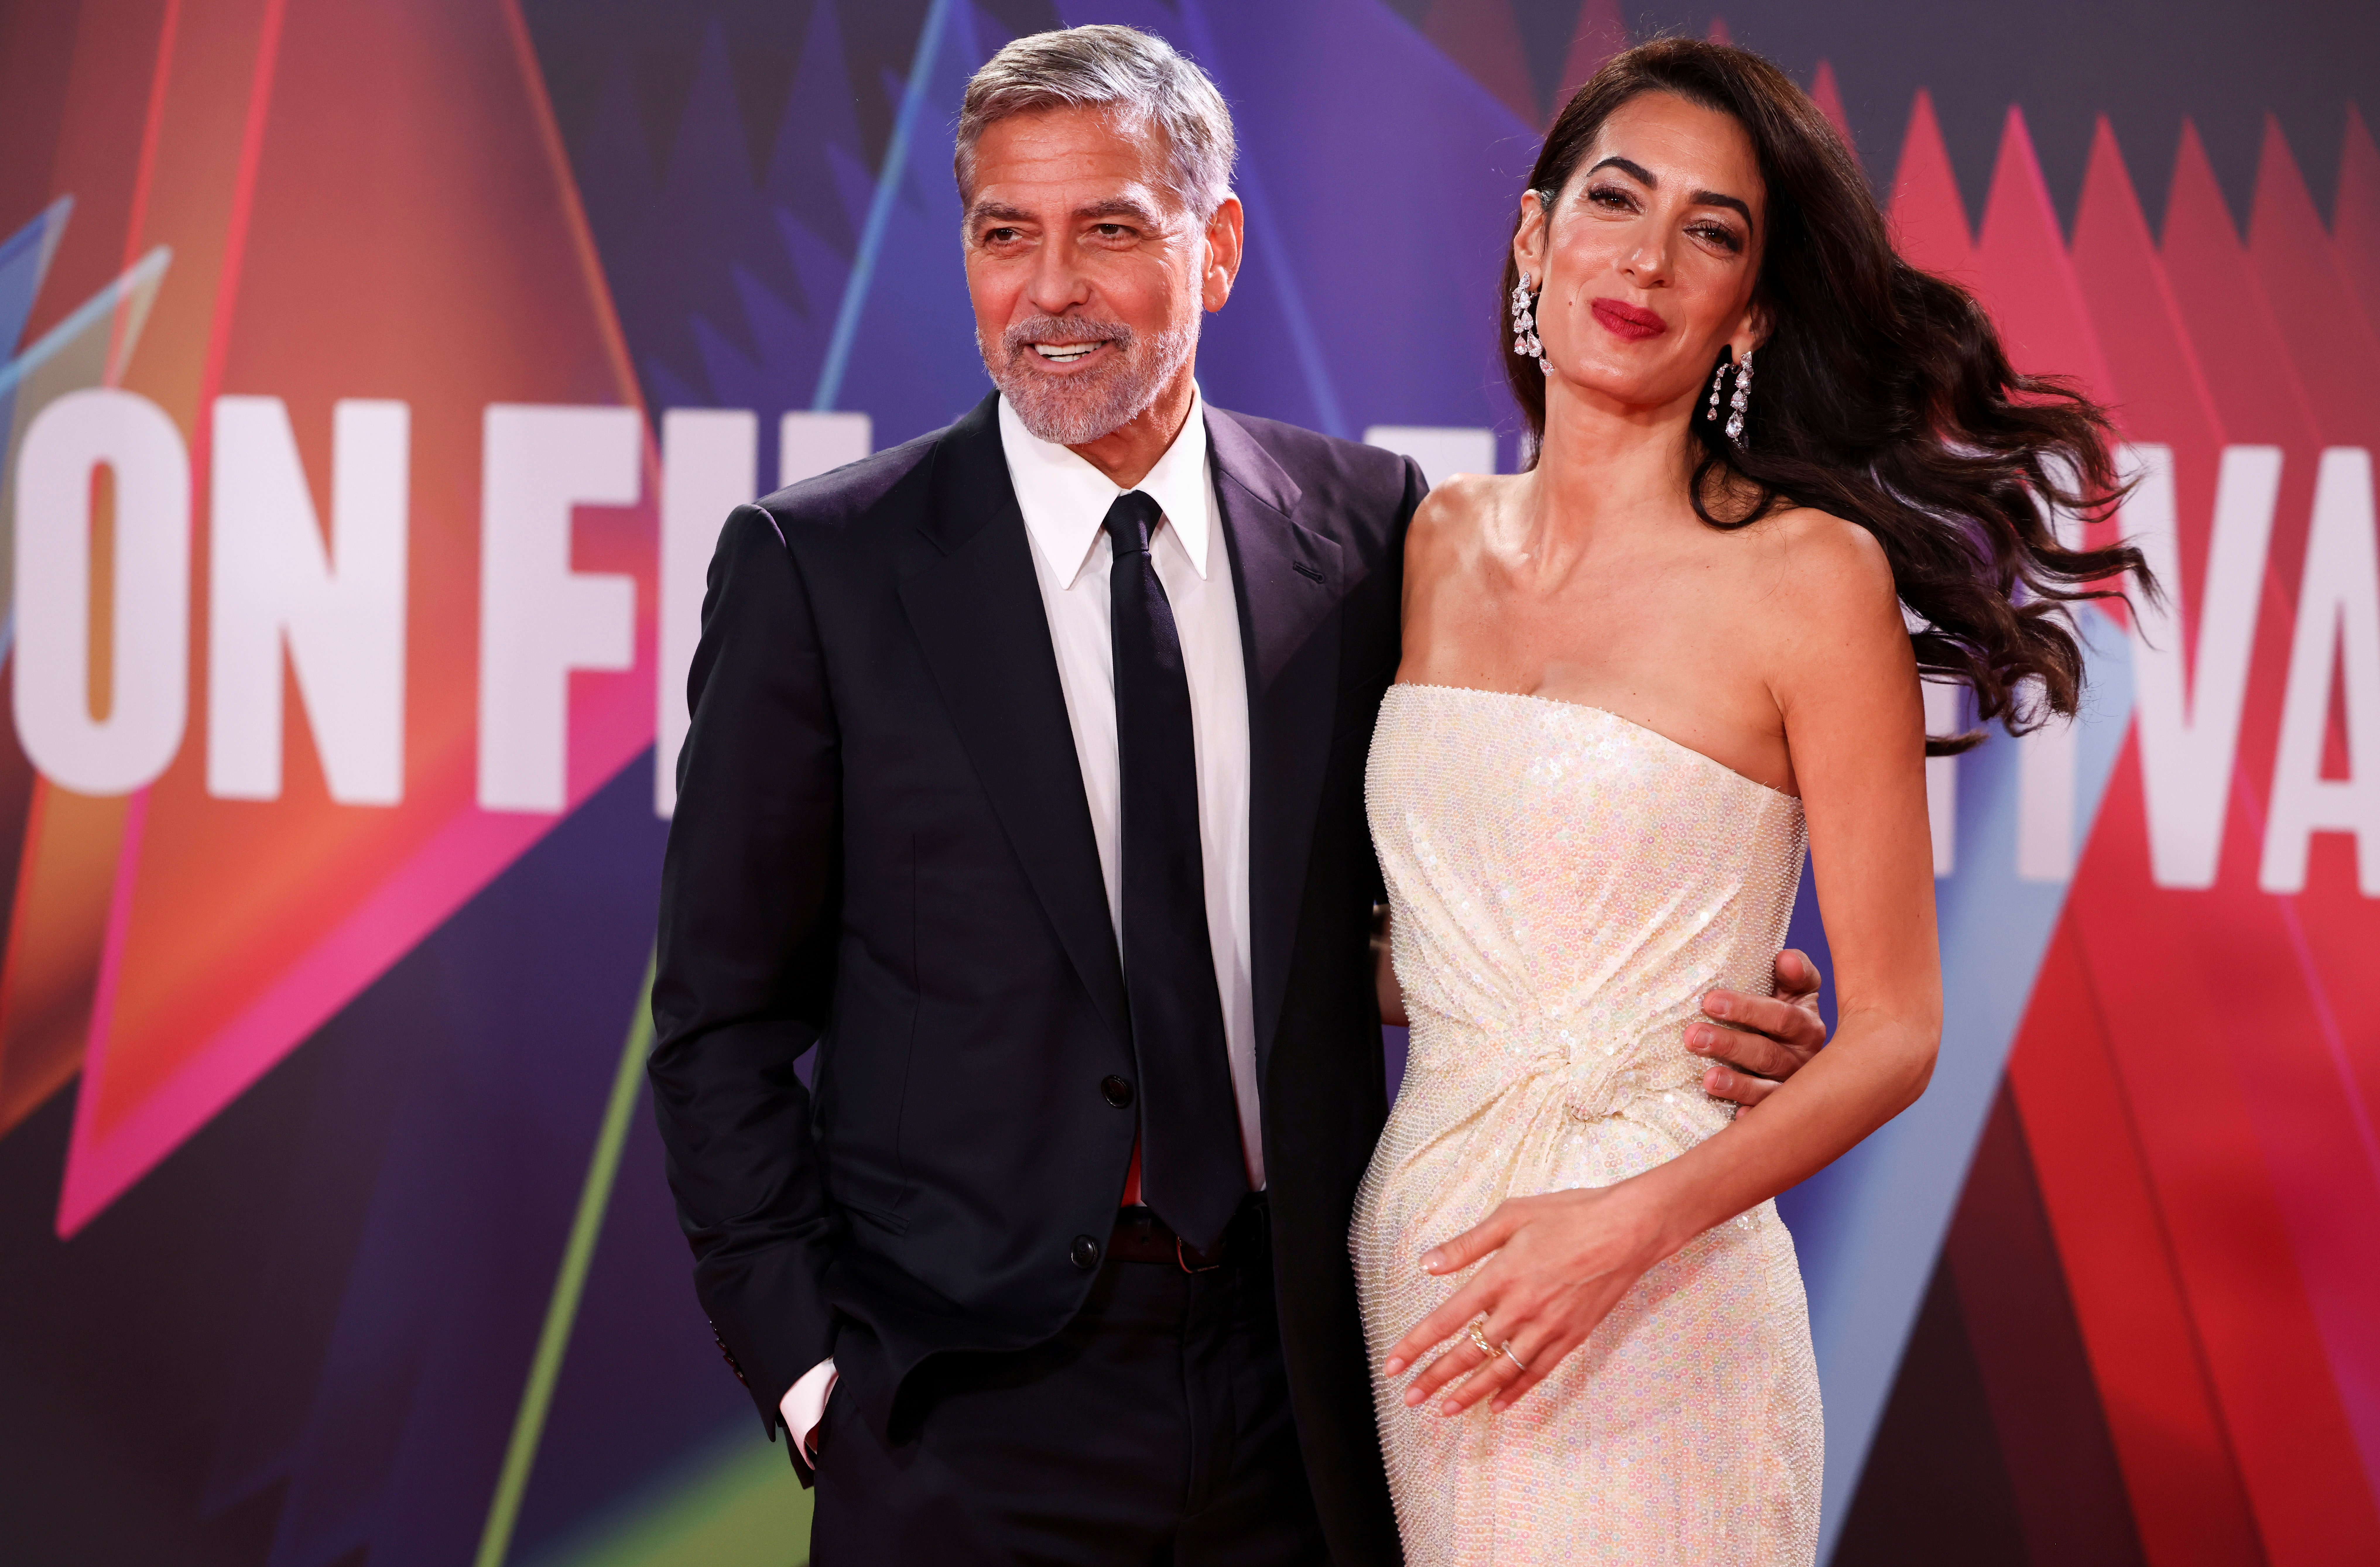 Director George Clooney and his wife lawyer Amal Clooney arrive for a screening of the film